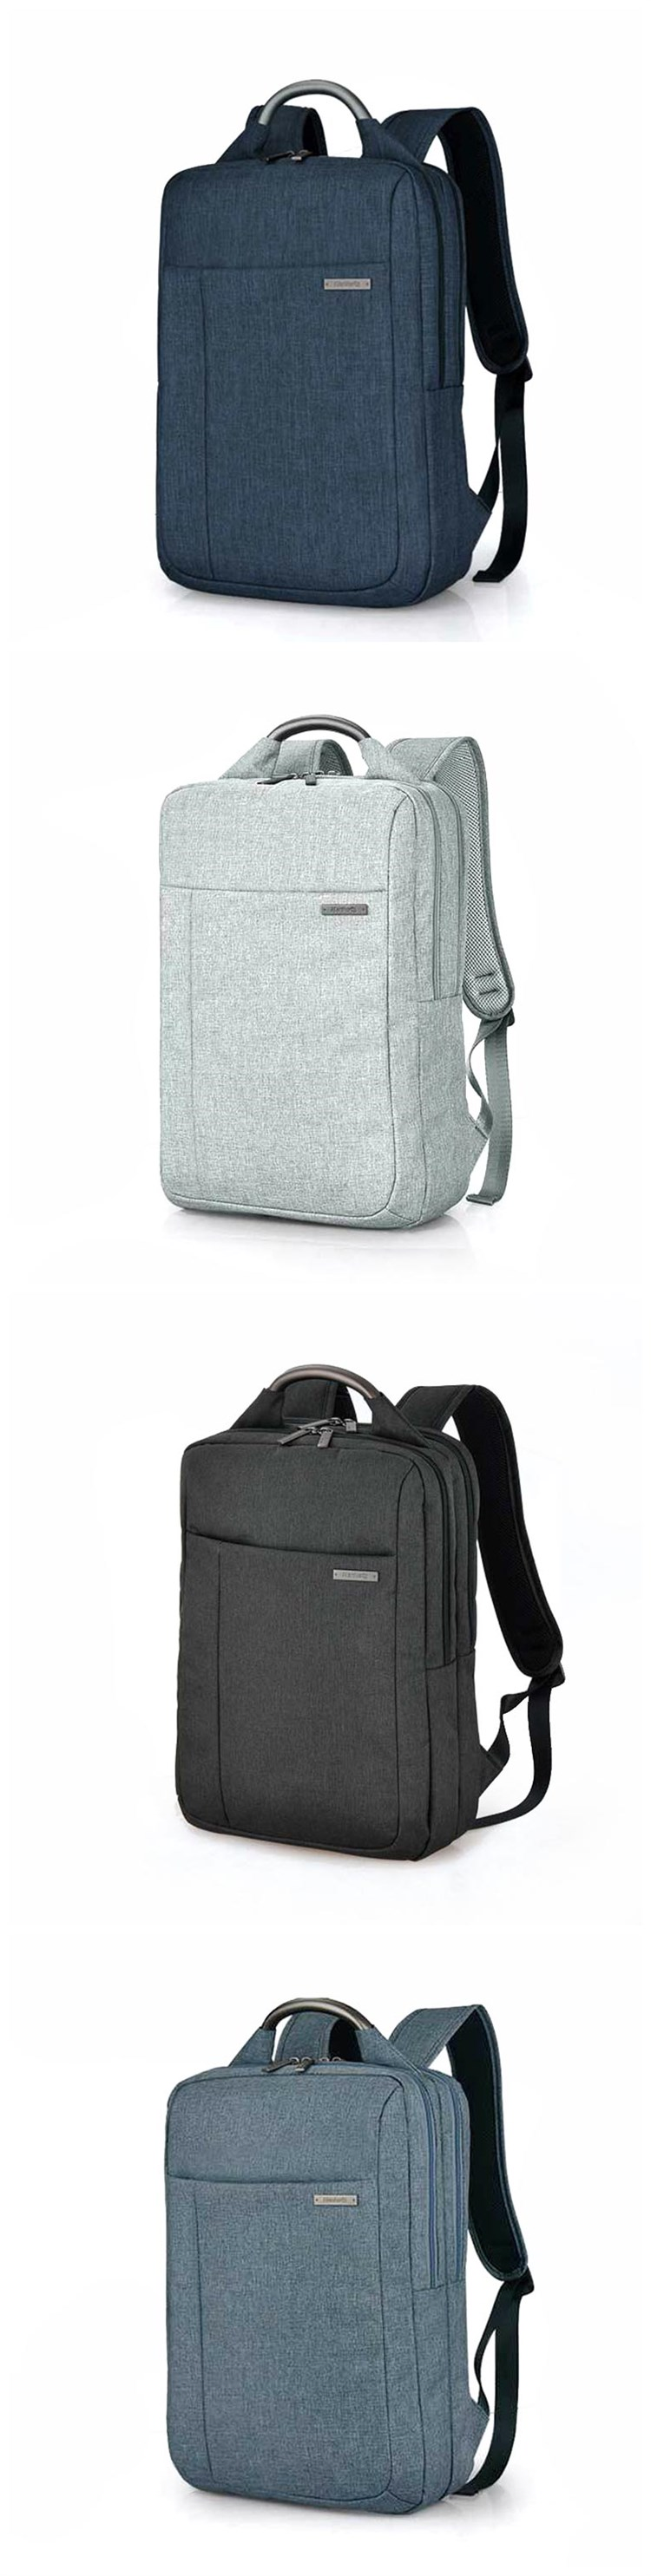 laptop backpack (2).jpg